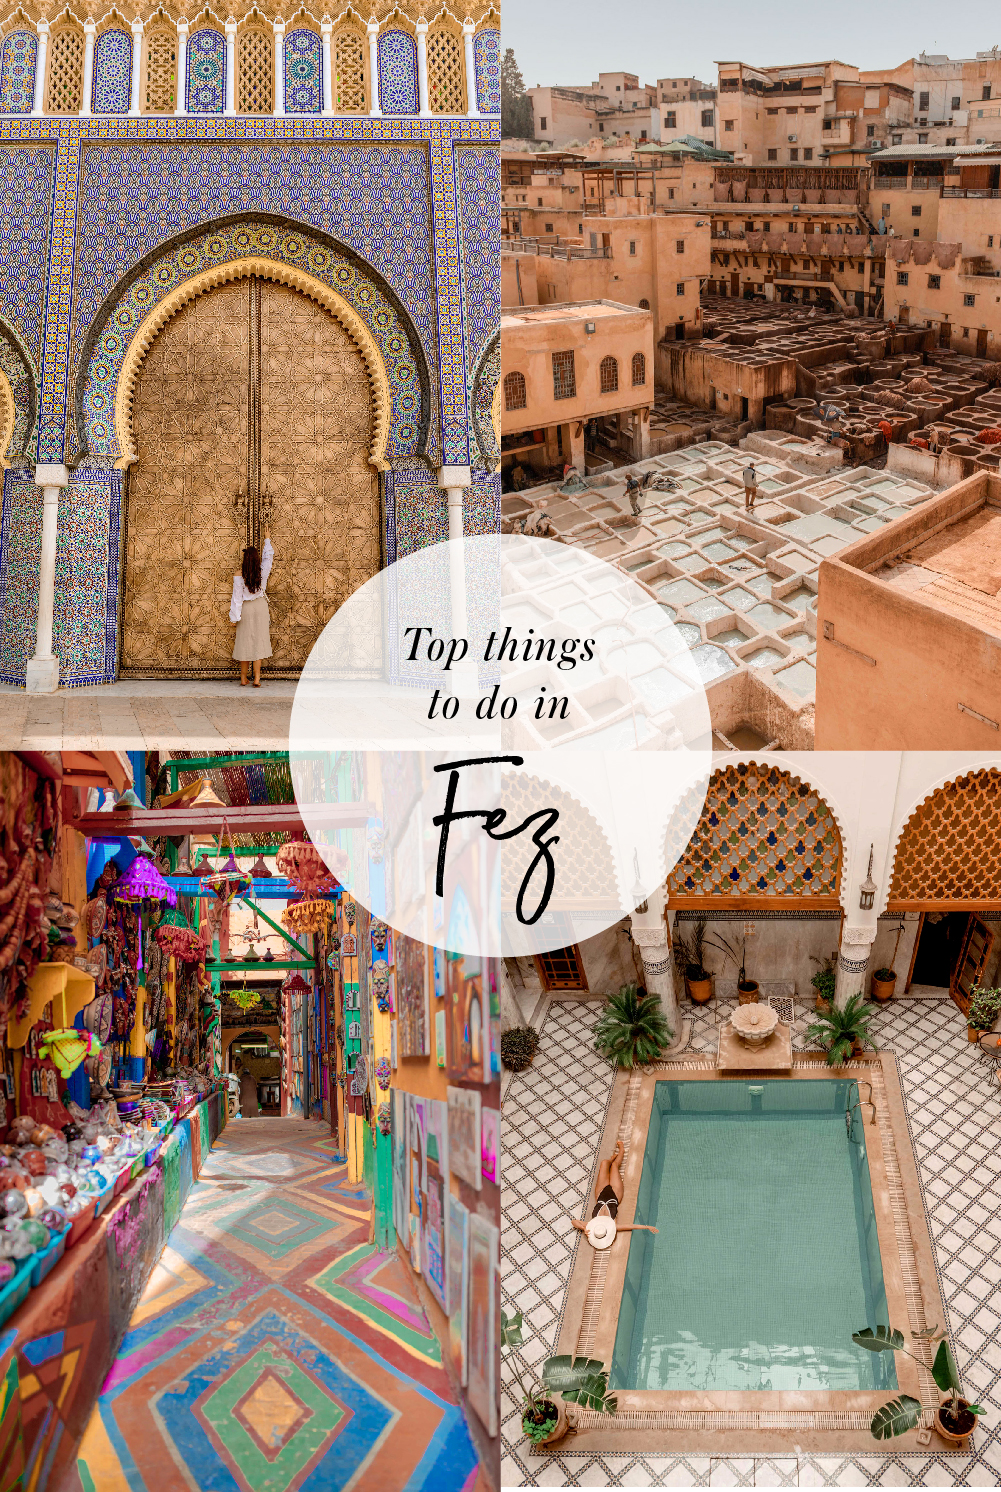 Top-things-to-do-in-Fez-Bucket-list-kelseyinlondon-Kelsey-Heinrichs--What-to-do-in-Fez--Where-to-go-in-Fez-top-places-in-Fez-